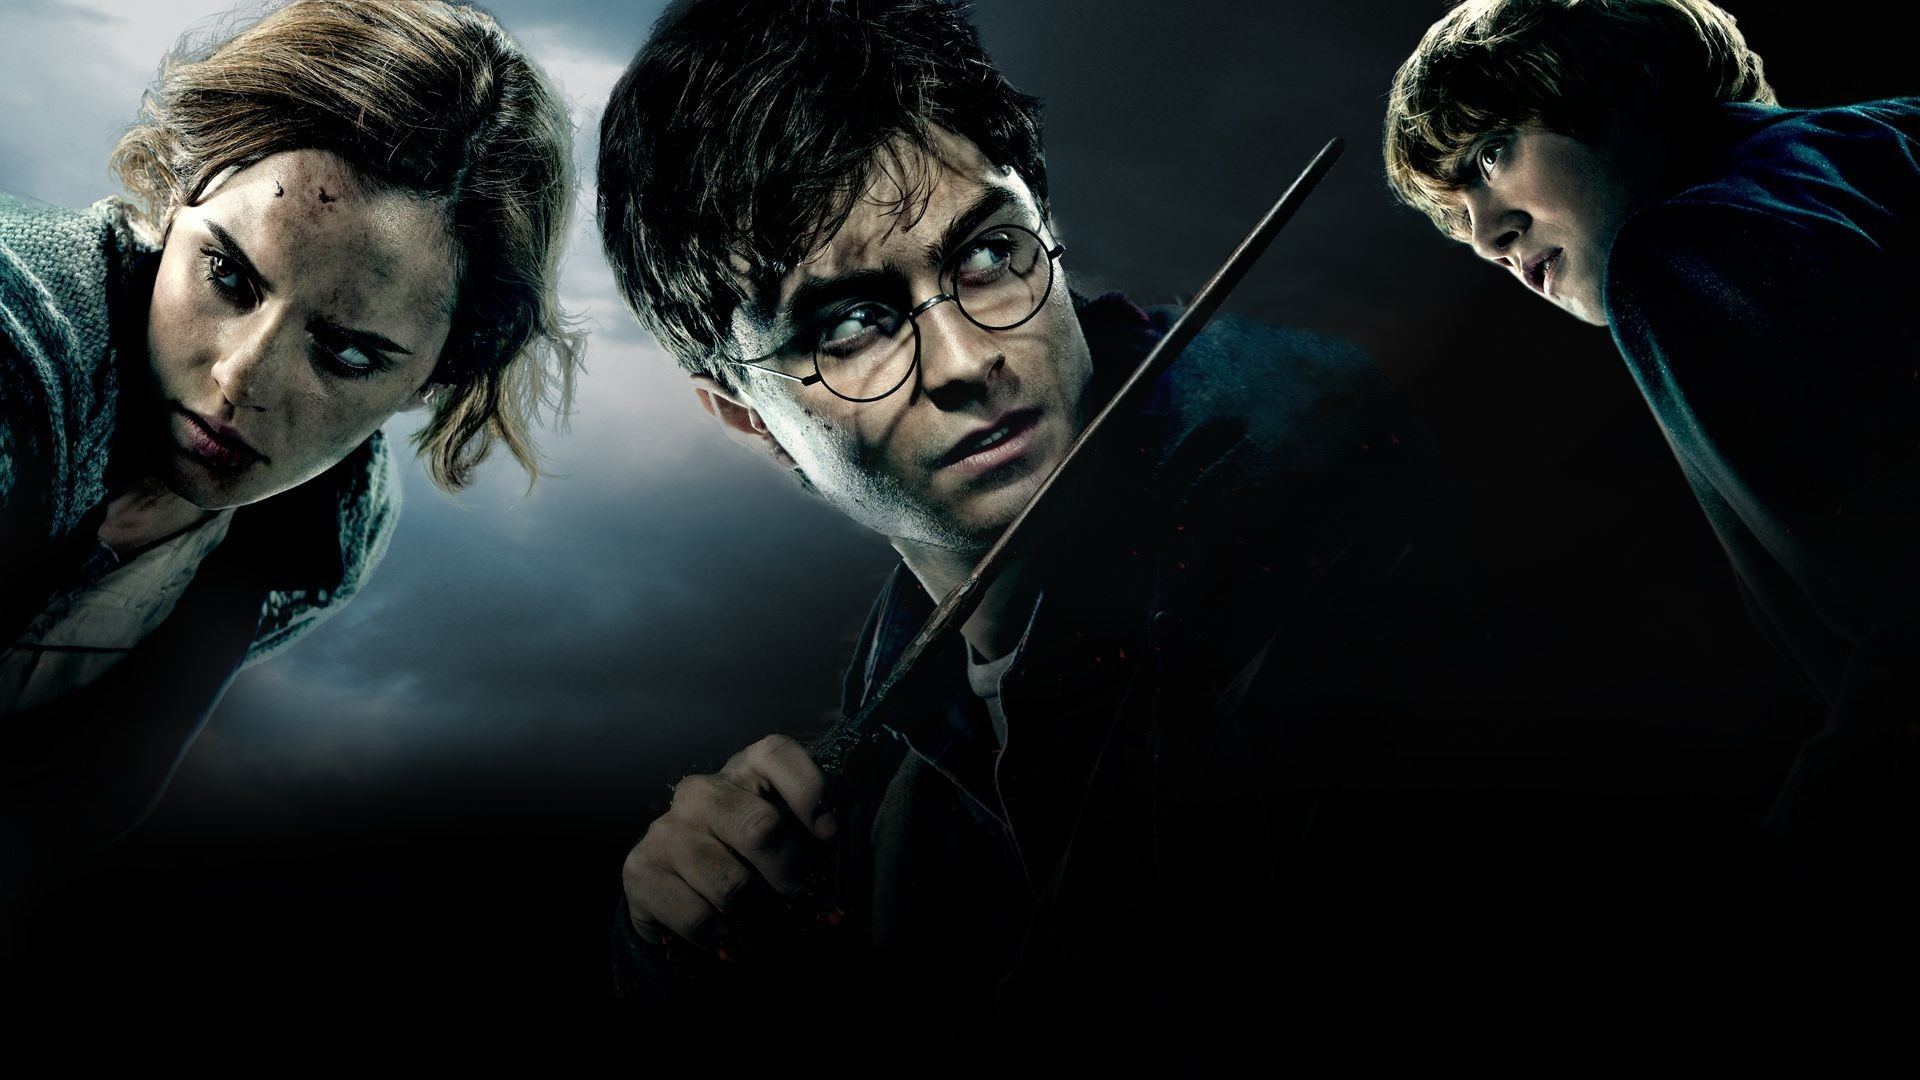 Harry Potter And The Deathly Hallows Part 1 Wallpapers Pictures